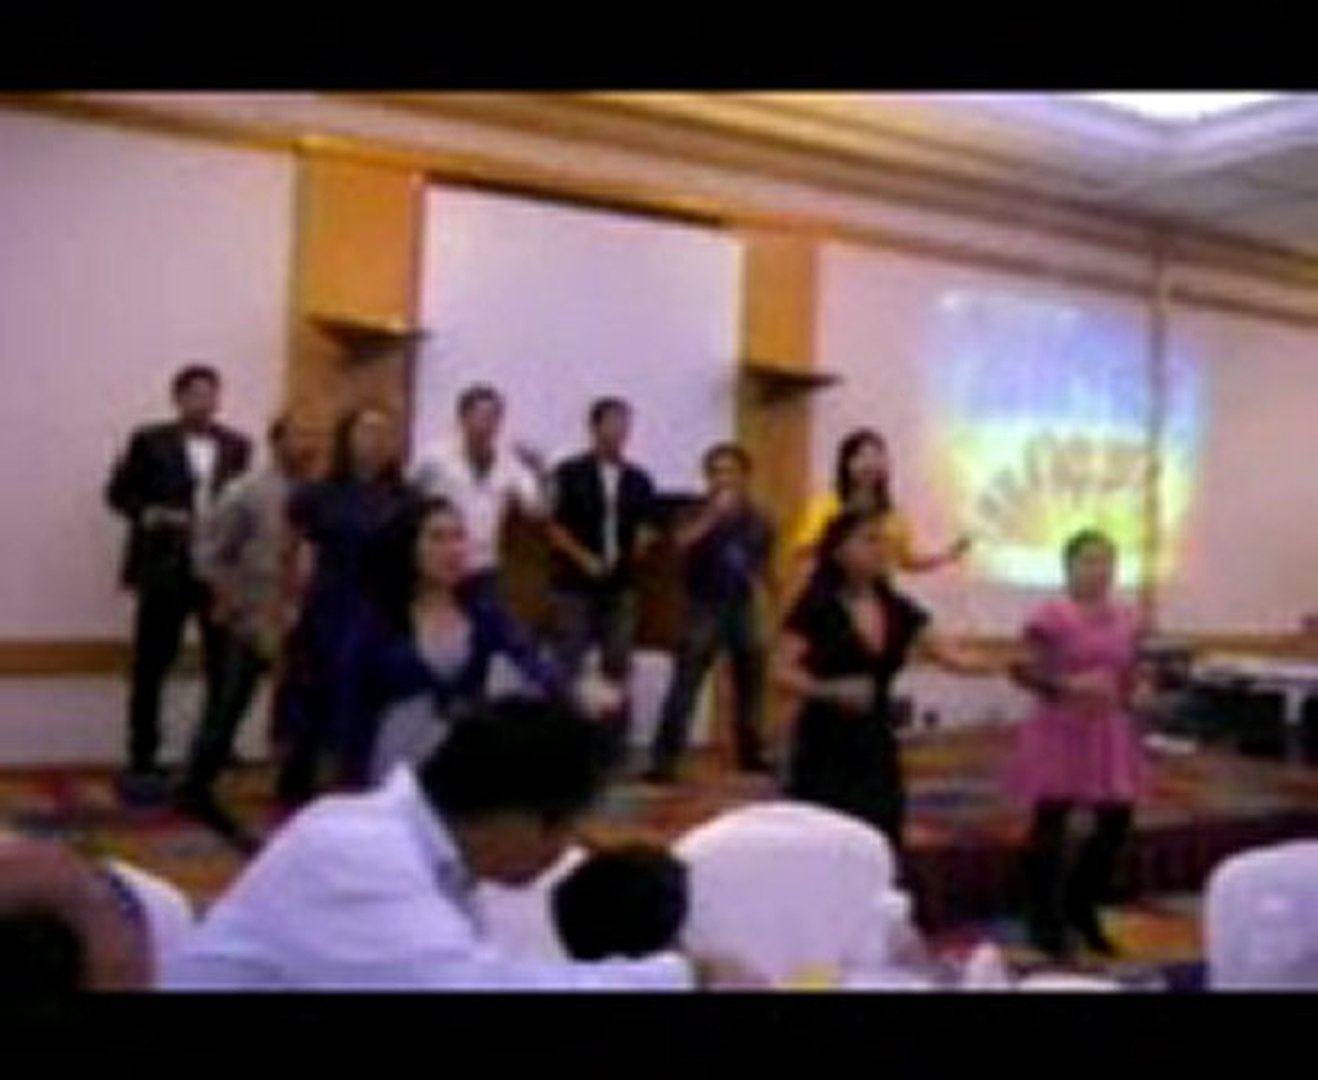 Give to the Lord. JIL Jebel Ali offers dance to the LORD